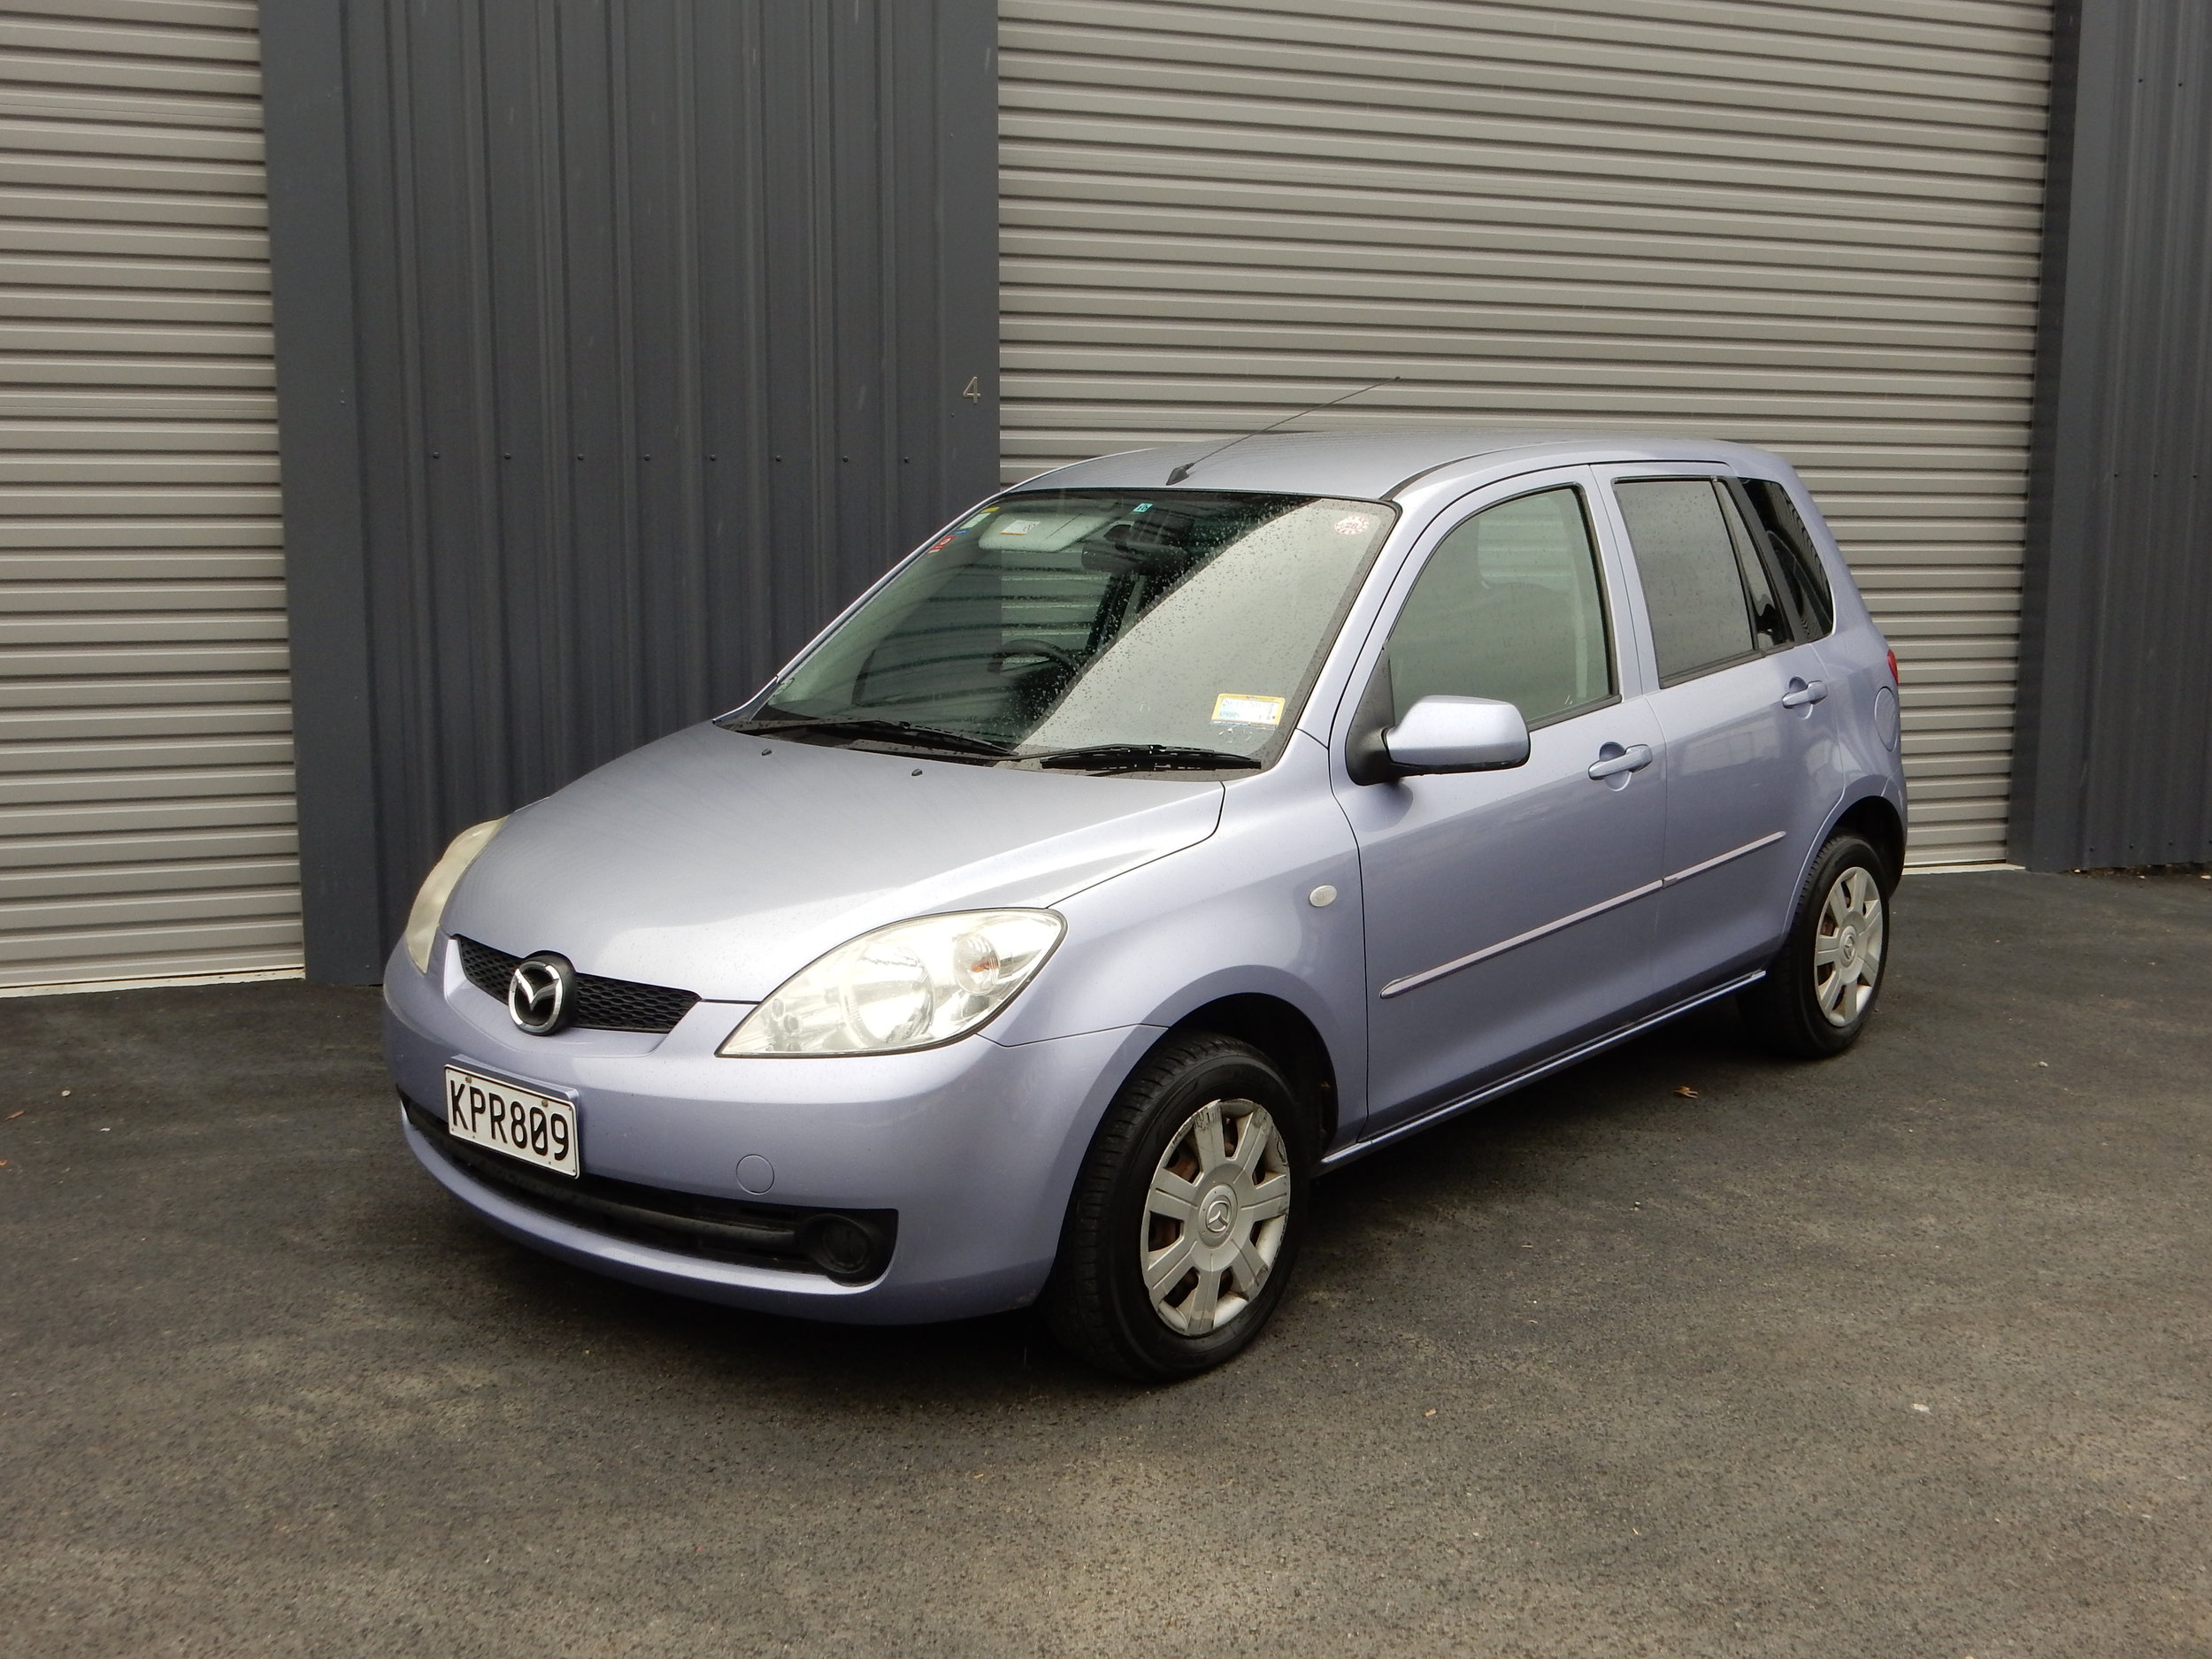 Mazda Demio / Toyota Vitz - 2005 - 20061300 - 1500cc6L/100km fuel use45L fuel tankUnleaded fuelAir ConditionTwin AirbagsAutomaticFrom $25 Per dayMinimum hire periods apply for this rate